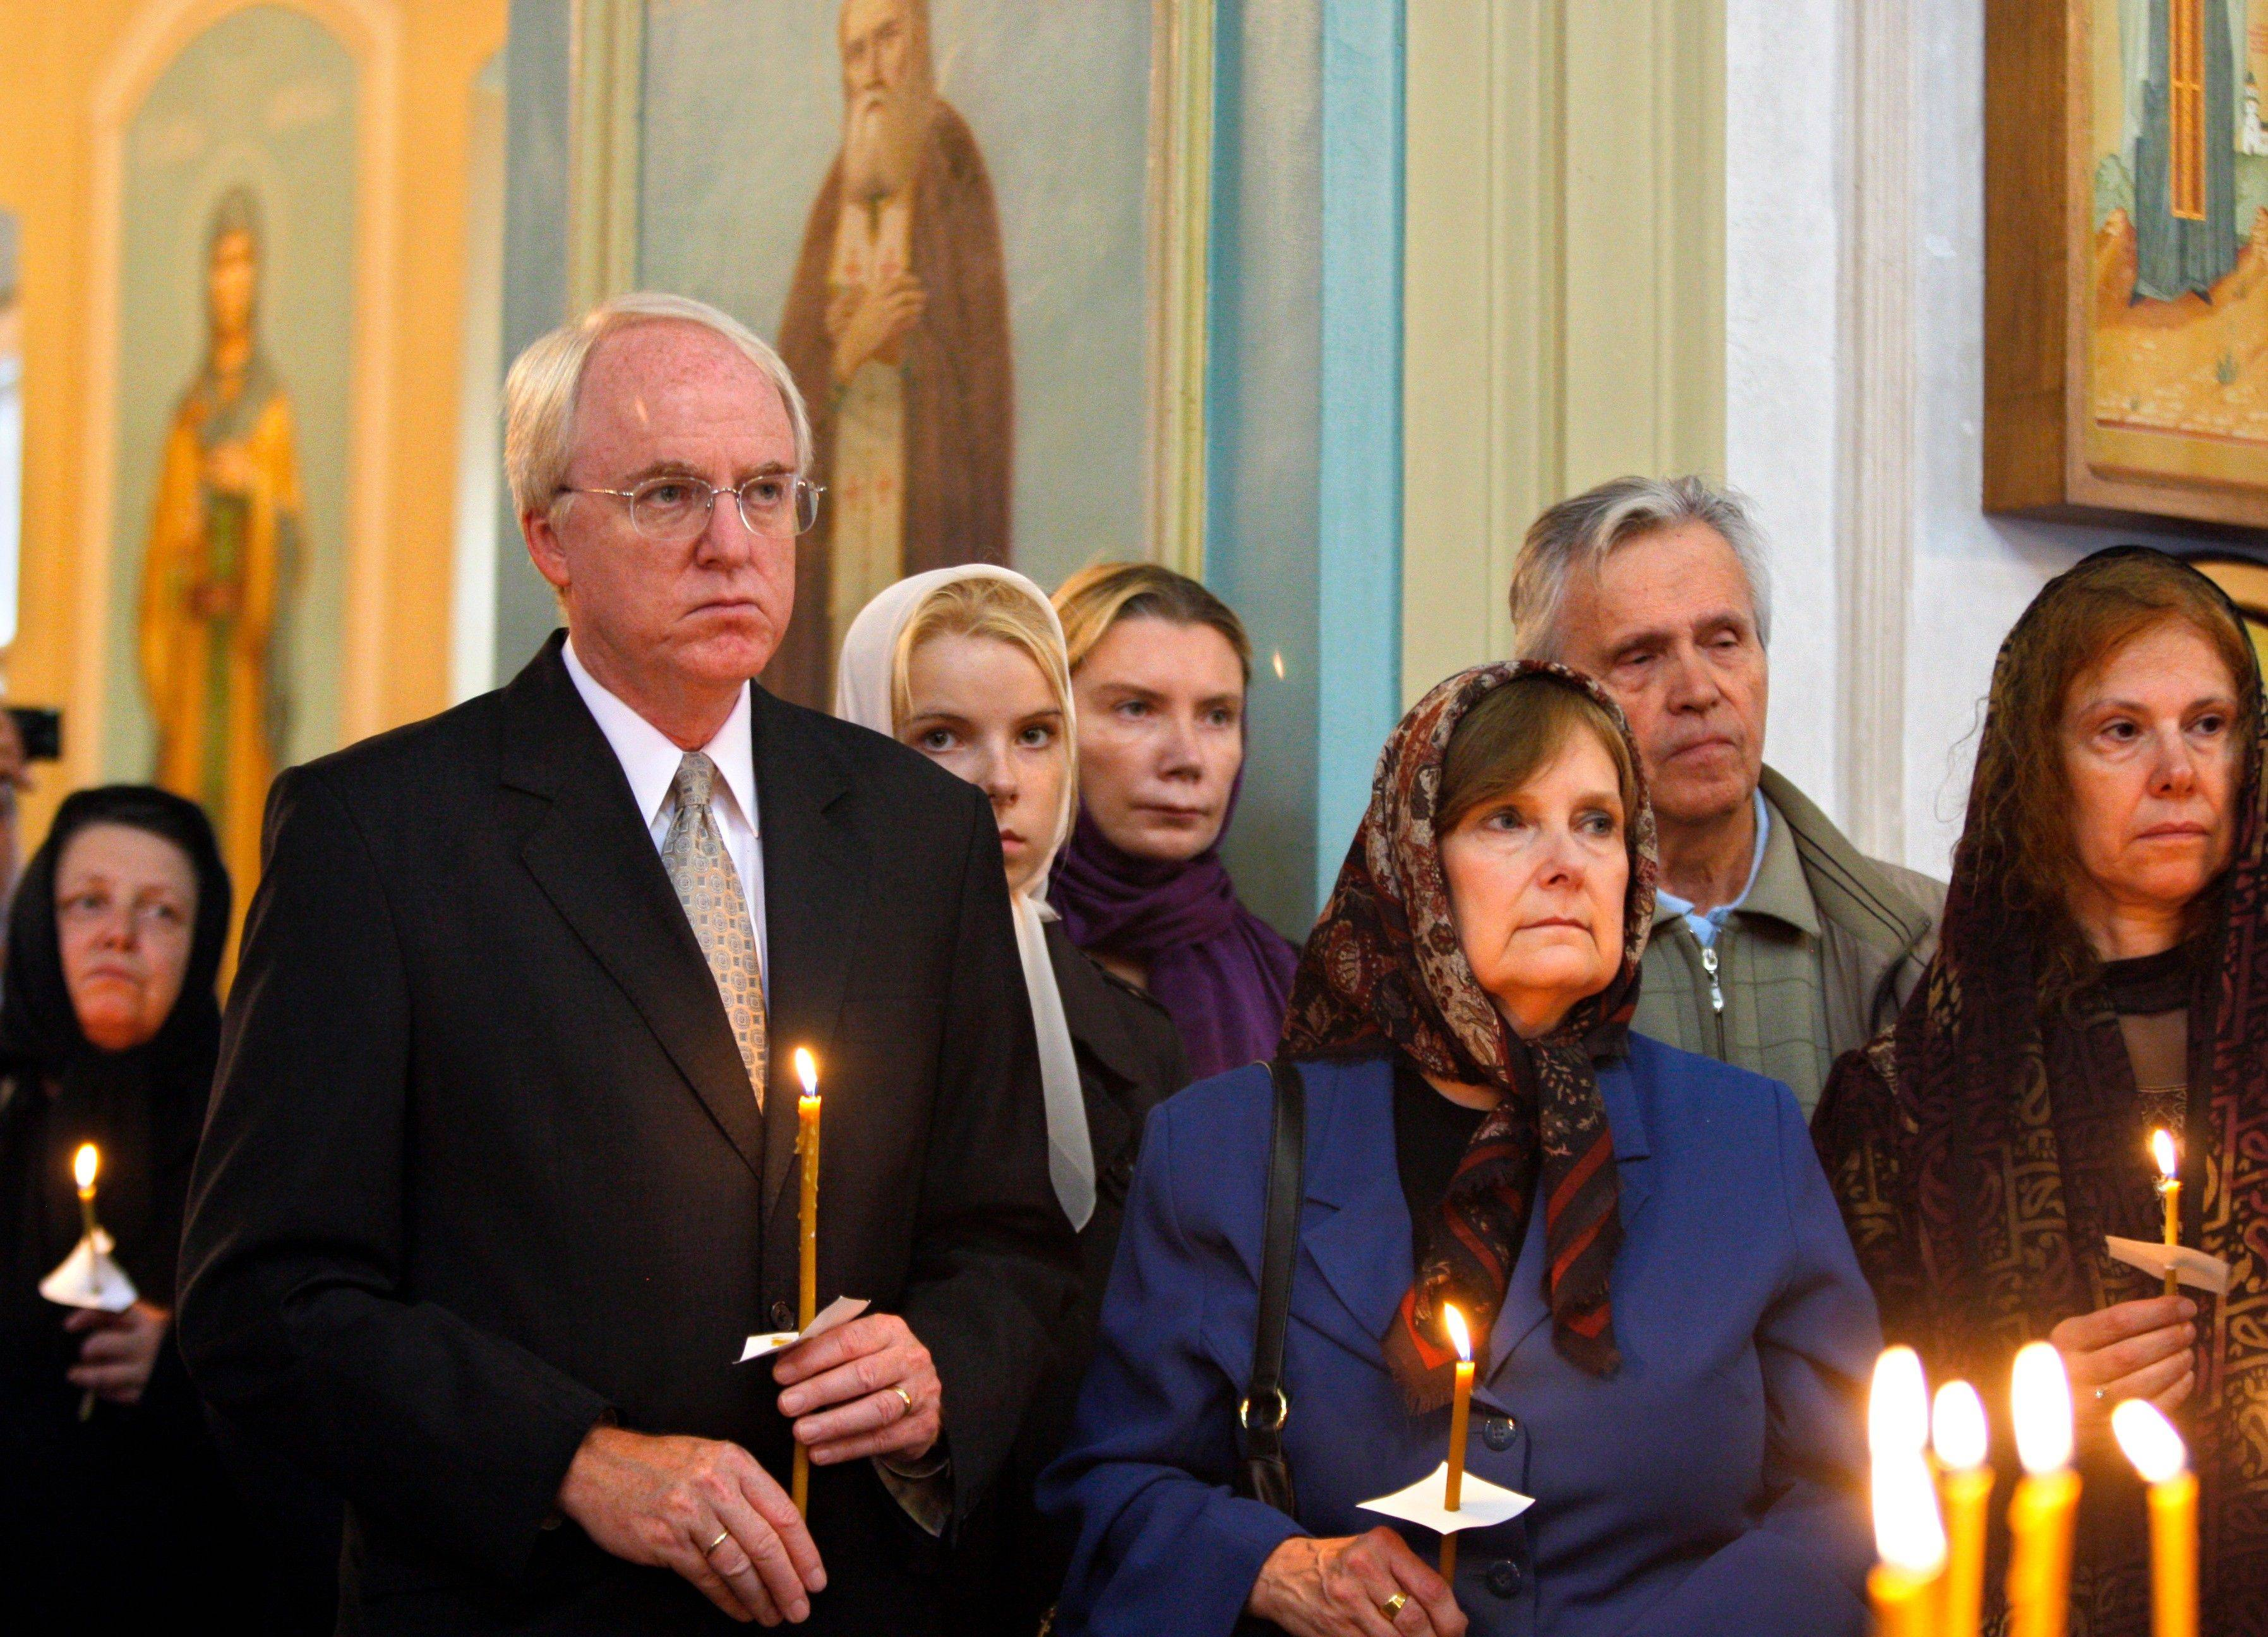 The US Ambassador to Russia John Beyrle, foreground left, holds a candle at the Church of St. Catherine in remembrance of the Sept. 11, 2001 victims in Moscow on Sunday, Sept. 11, 2011. Sunday marks the tenth anniversary of the attacks of September 11, 2001. The ambassador participated in events to commemorate all victims of the September 11 terror attacks in US.